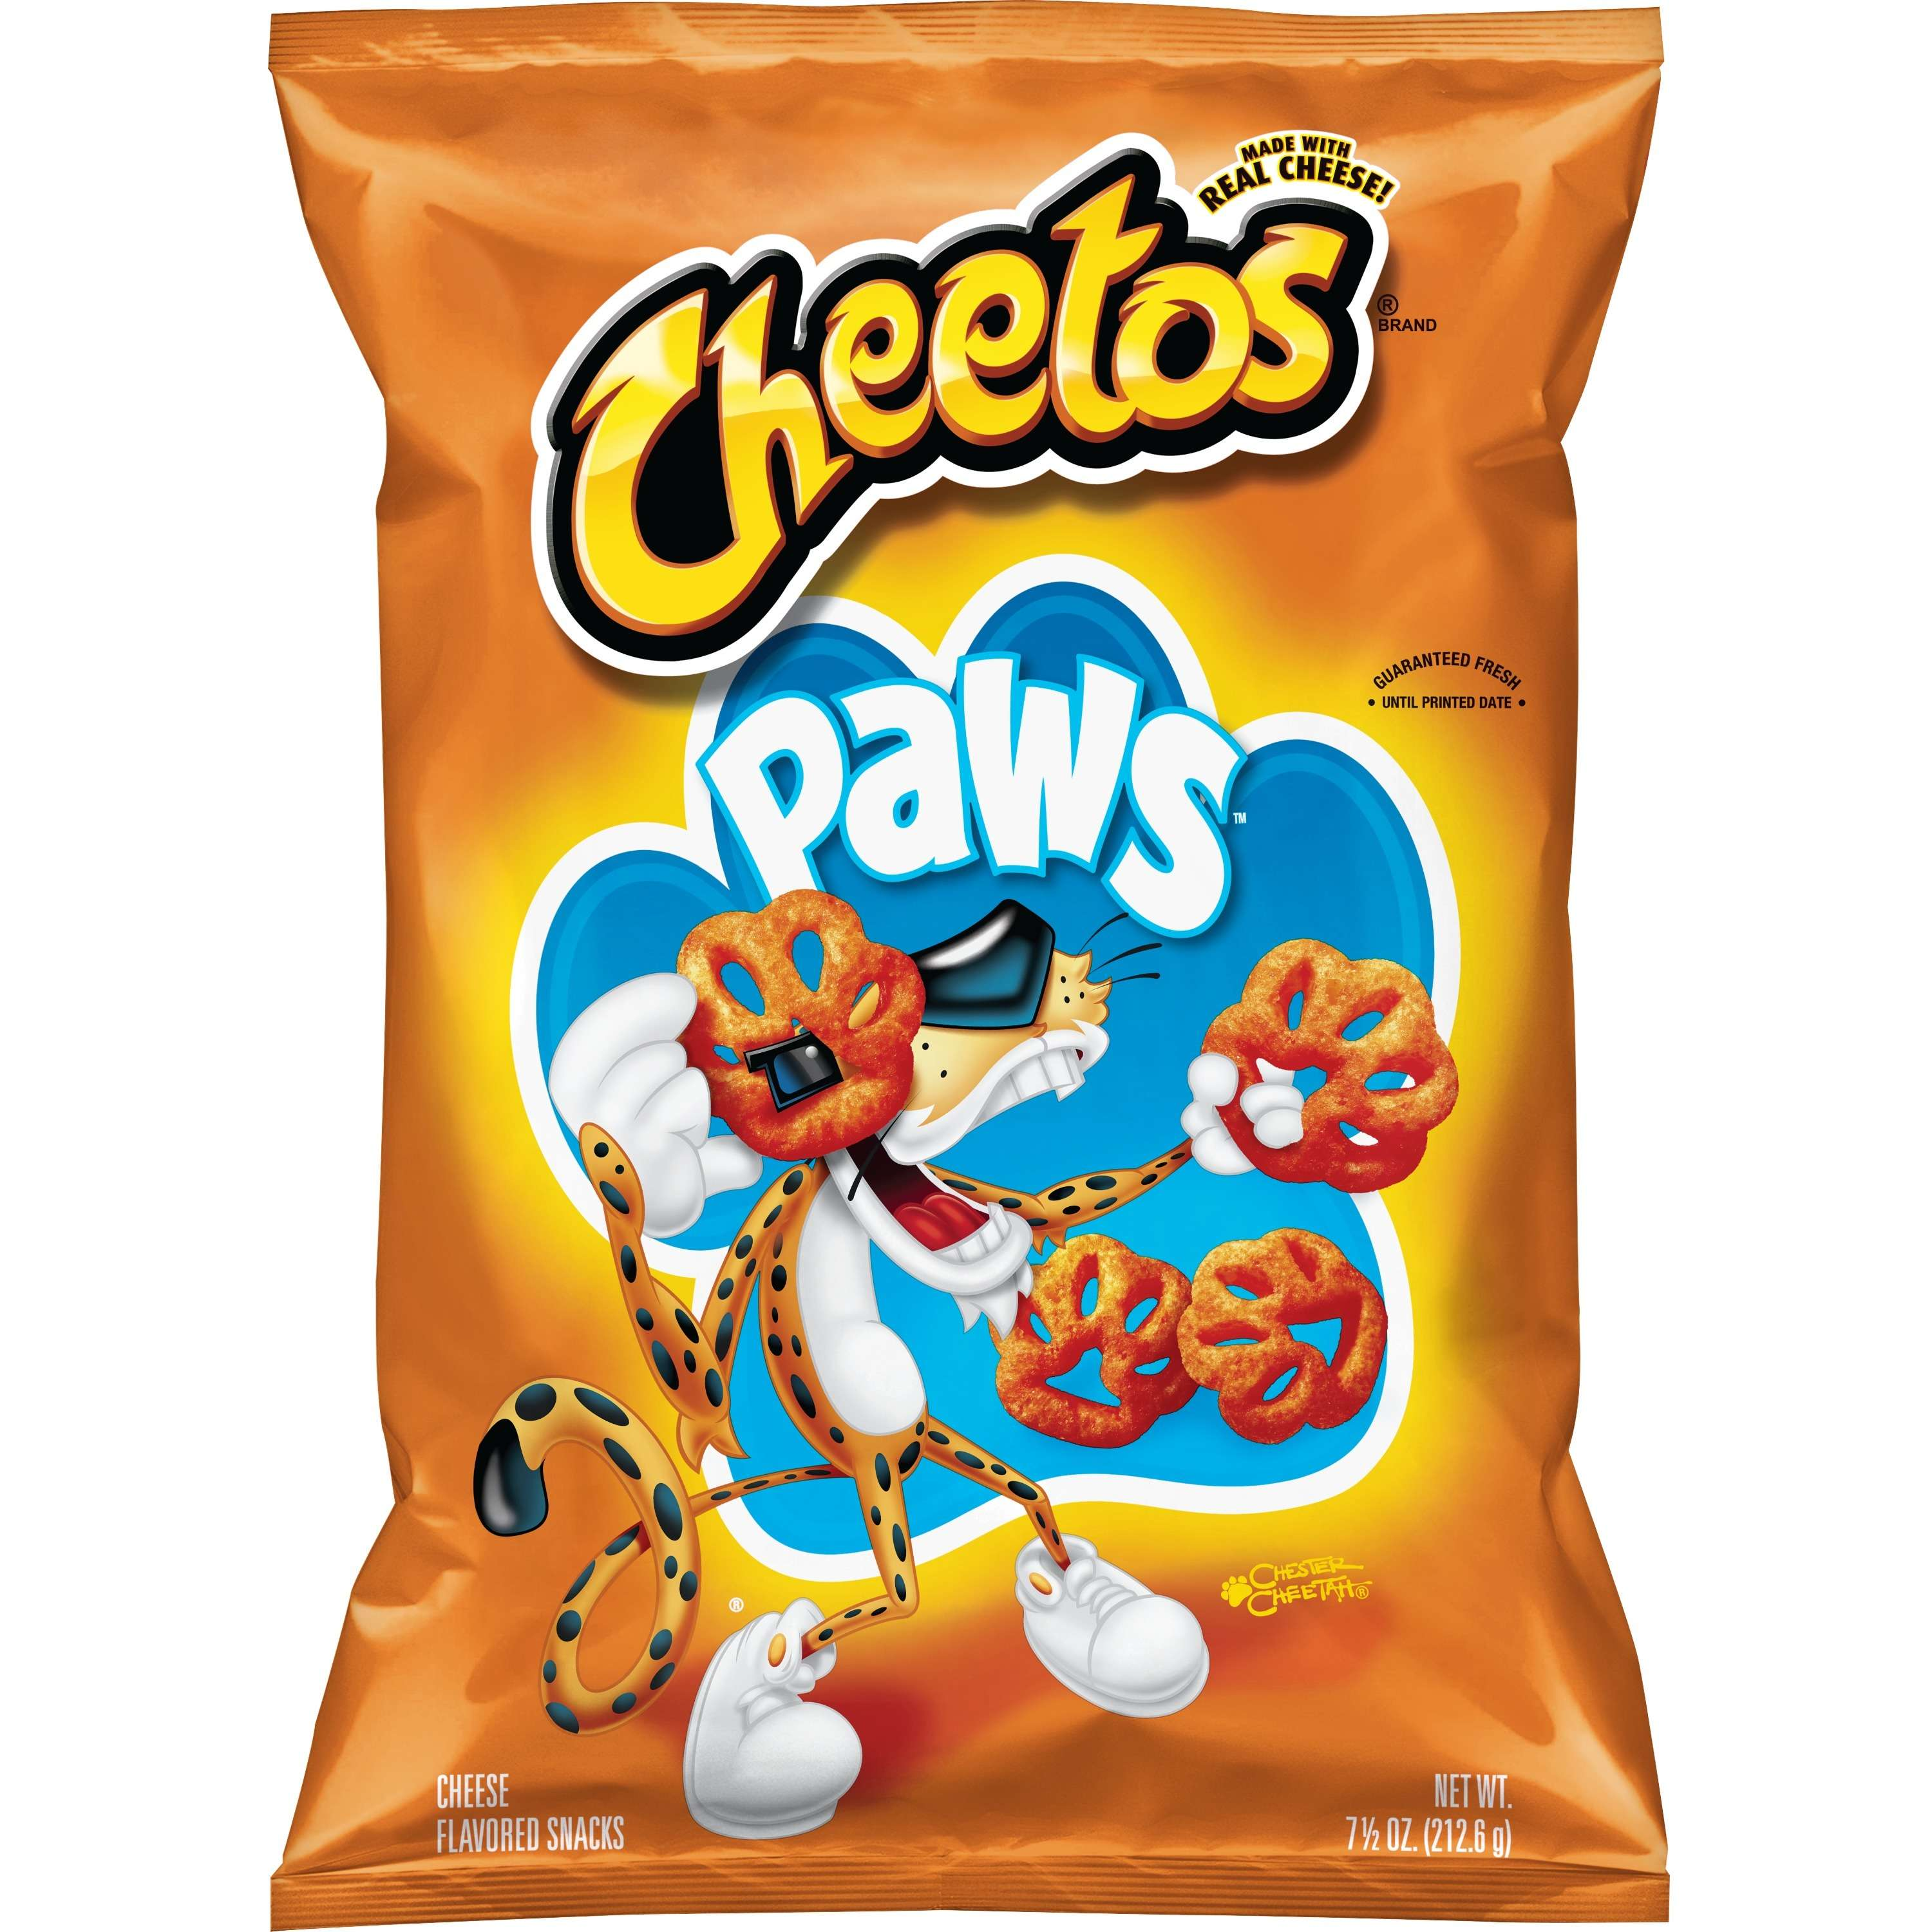 Cheetos Paws, Cheese Flavored Snacks, 7.5 oz. Bag